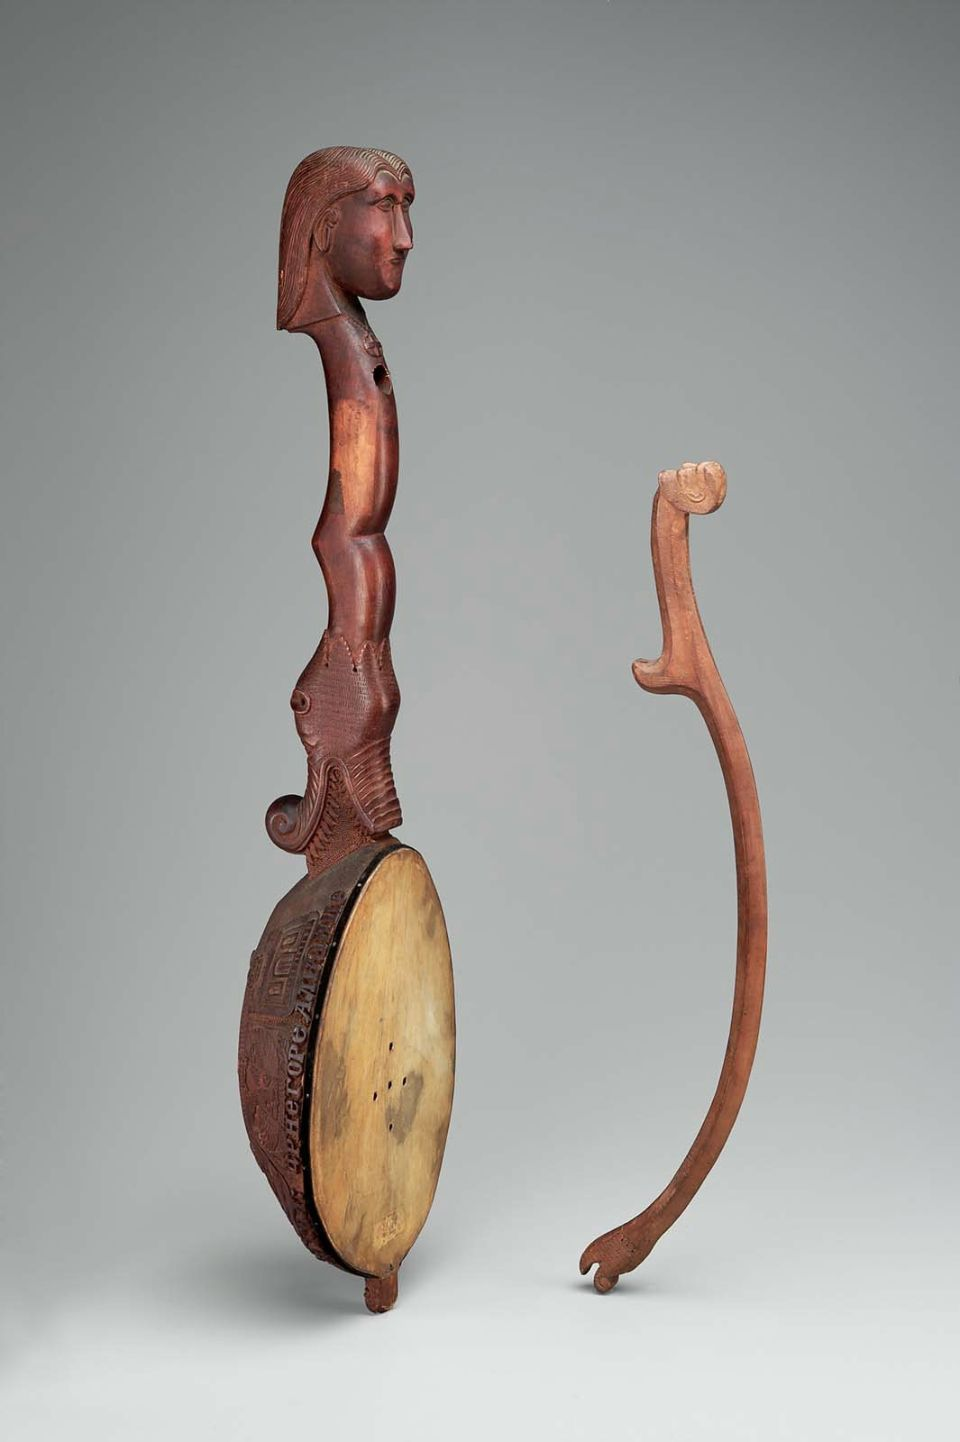 Fiddle (gusle) and bow late 19th century Serbia